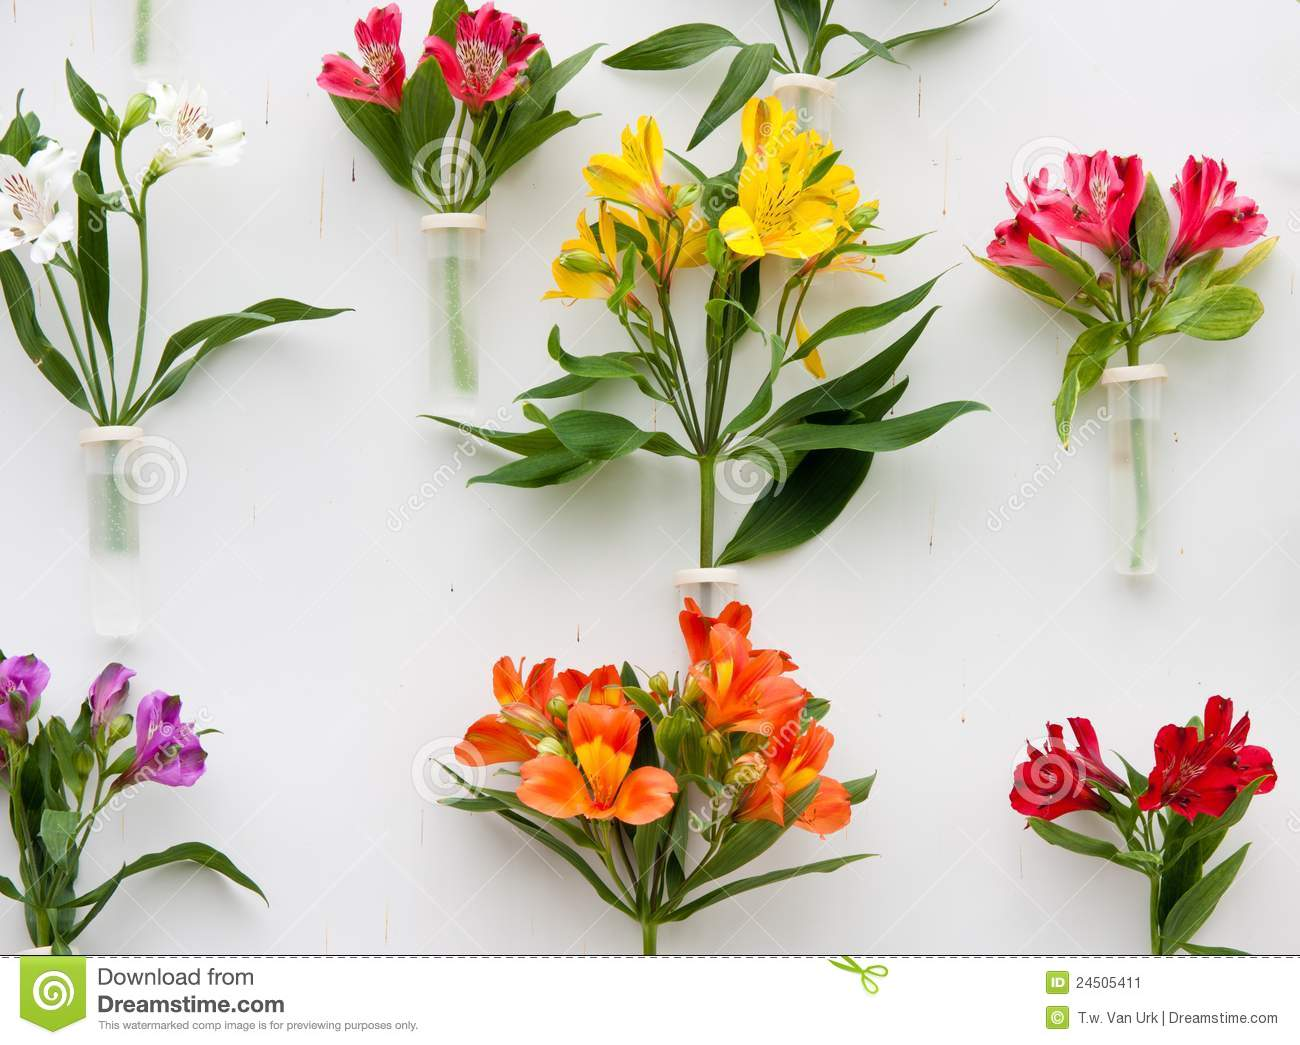 Decoration of beautiful flowers stock image image 24505411 for Decoration flowers